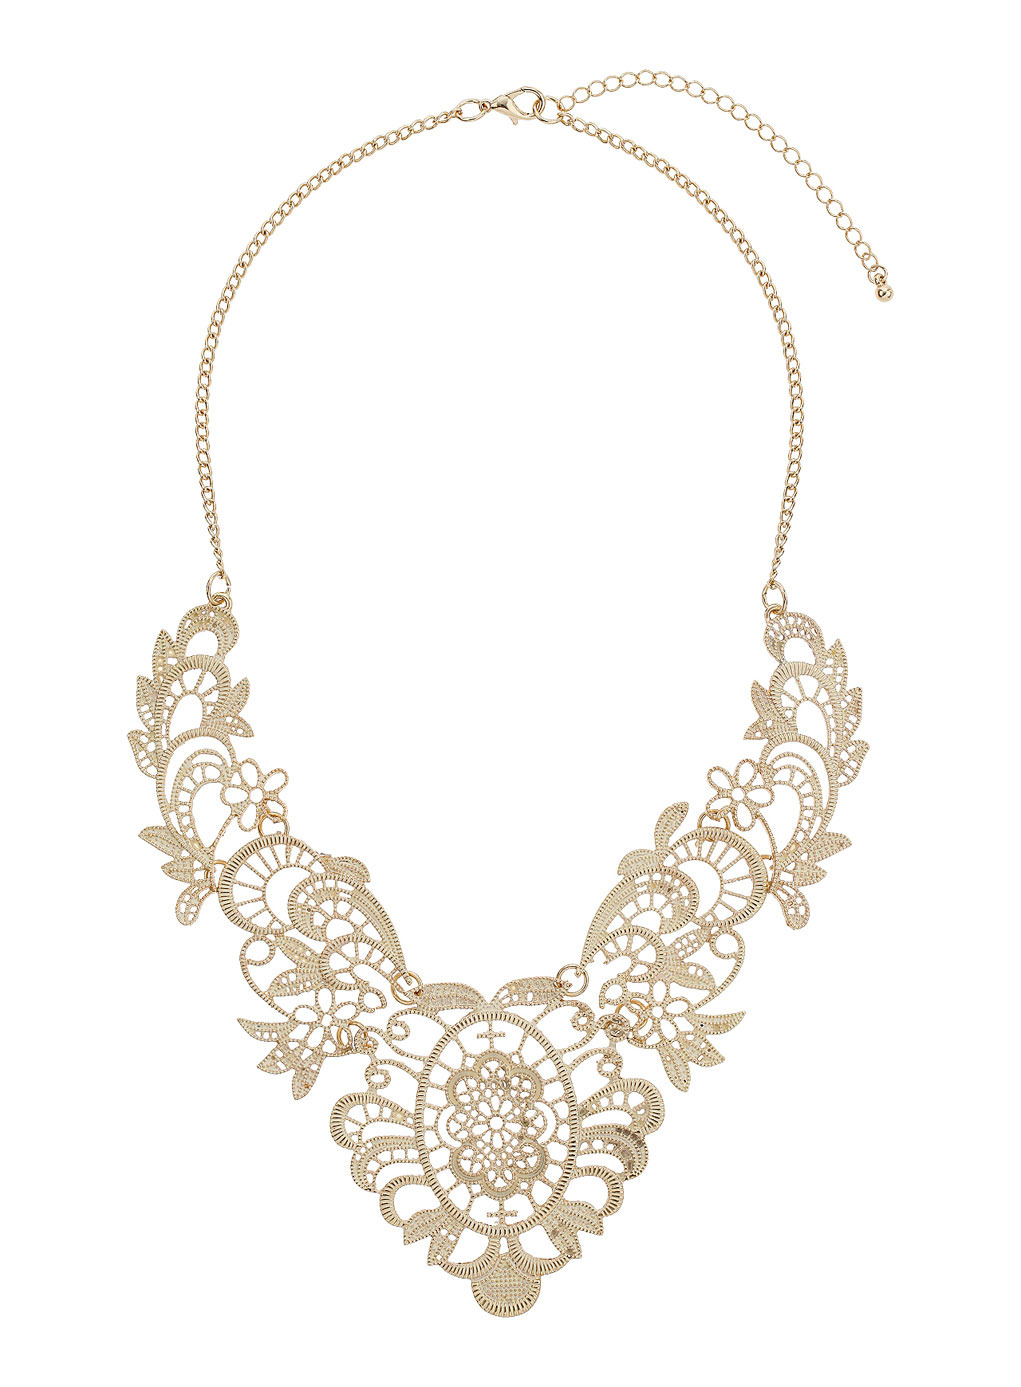 Gold Filigree Statement Necklace - predominant colour: gold; occasions: evening, occasion, creative work; length: mid; size: large/oversized; material: chain/metal; finish: metallic; style: bib/statement; season: s/s 2014